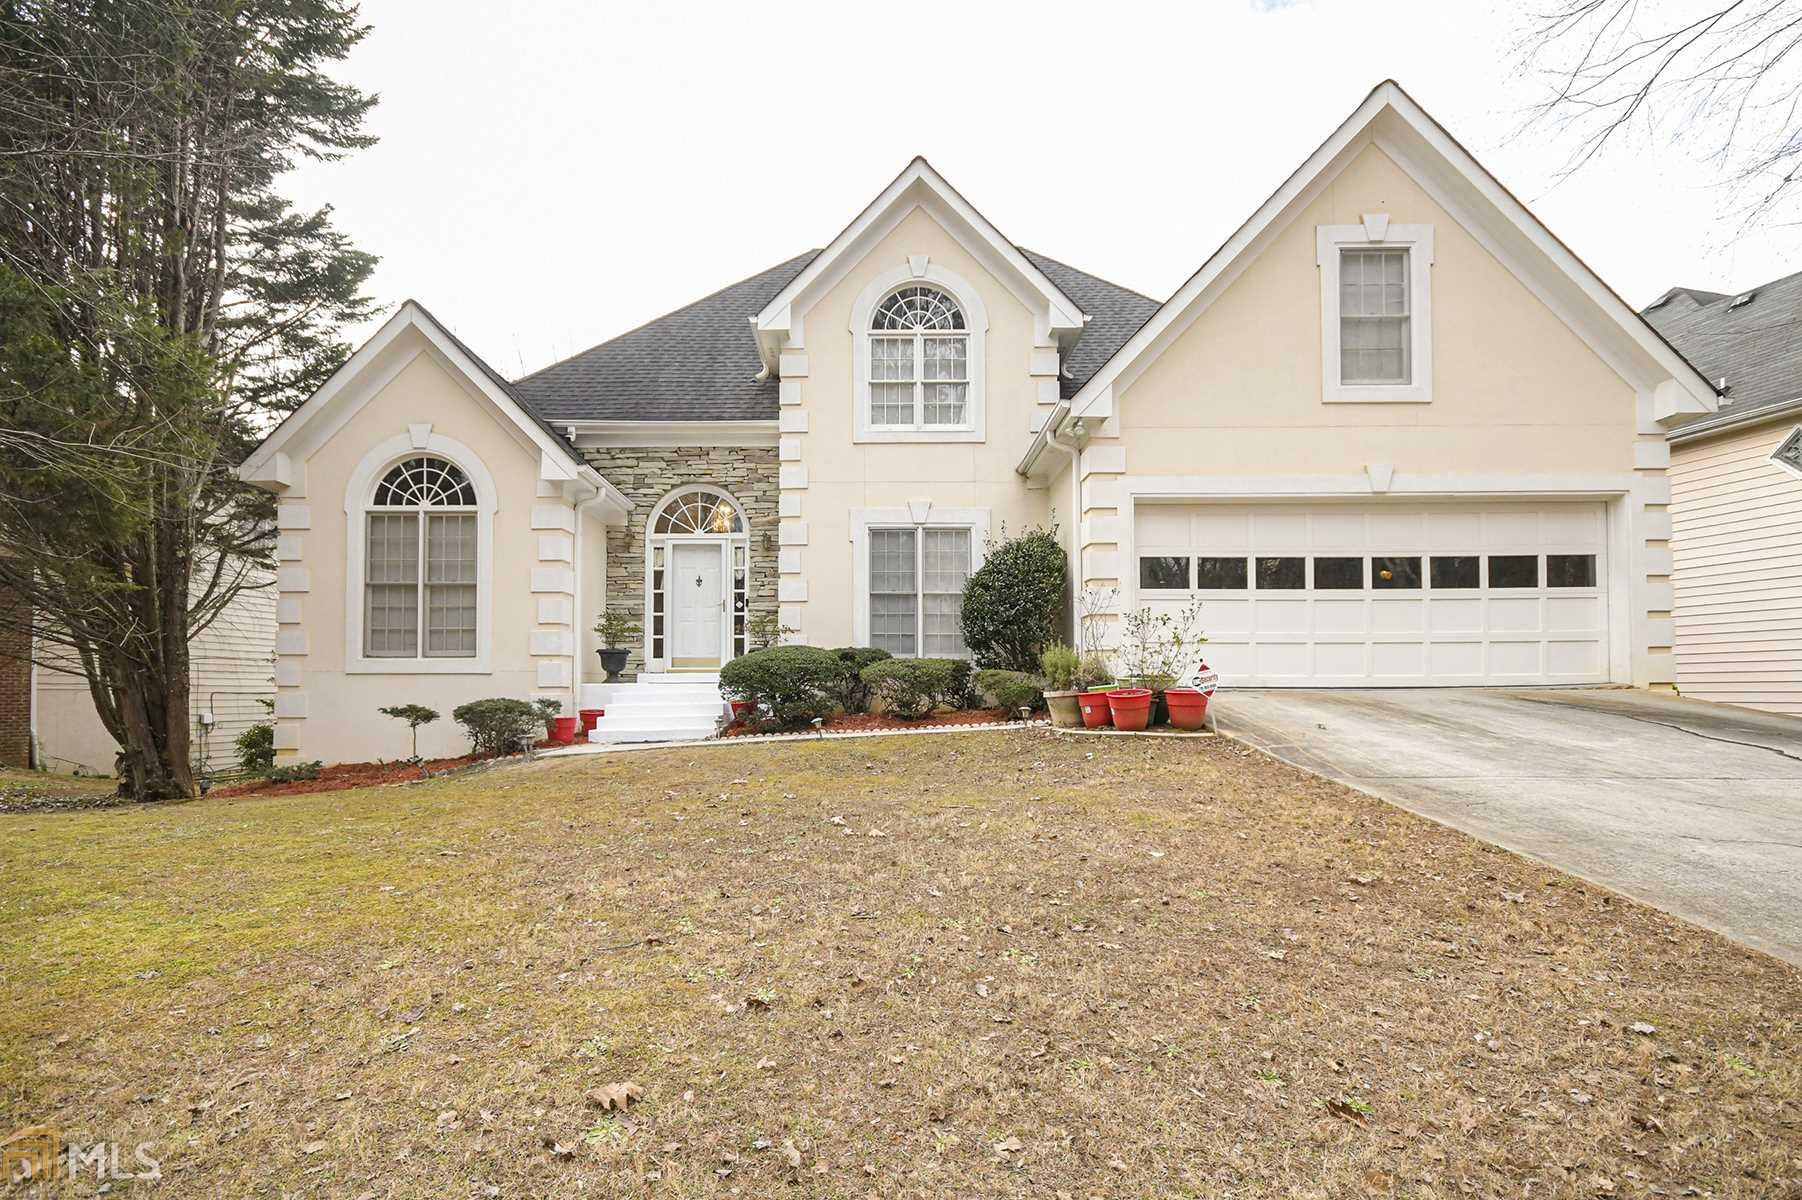 541 Thornbush Trce, Lawrenceville, GA 30046 - MLS#: 8906832